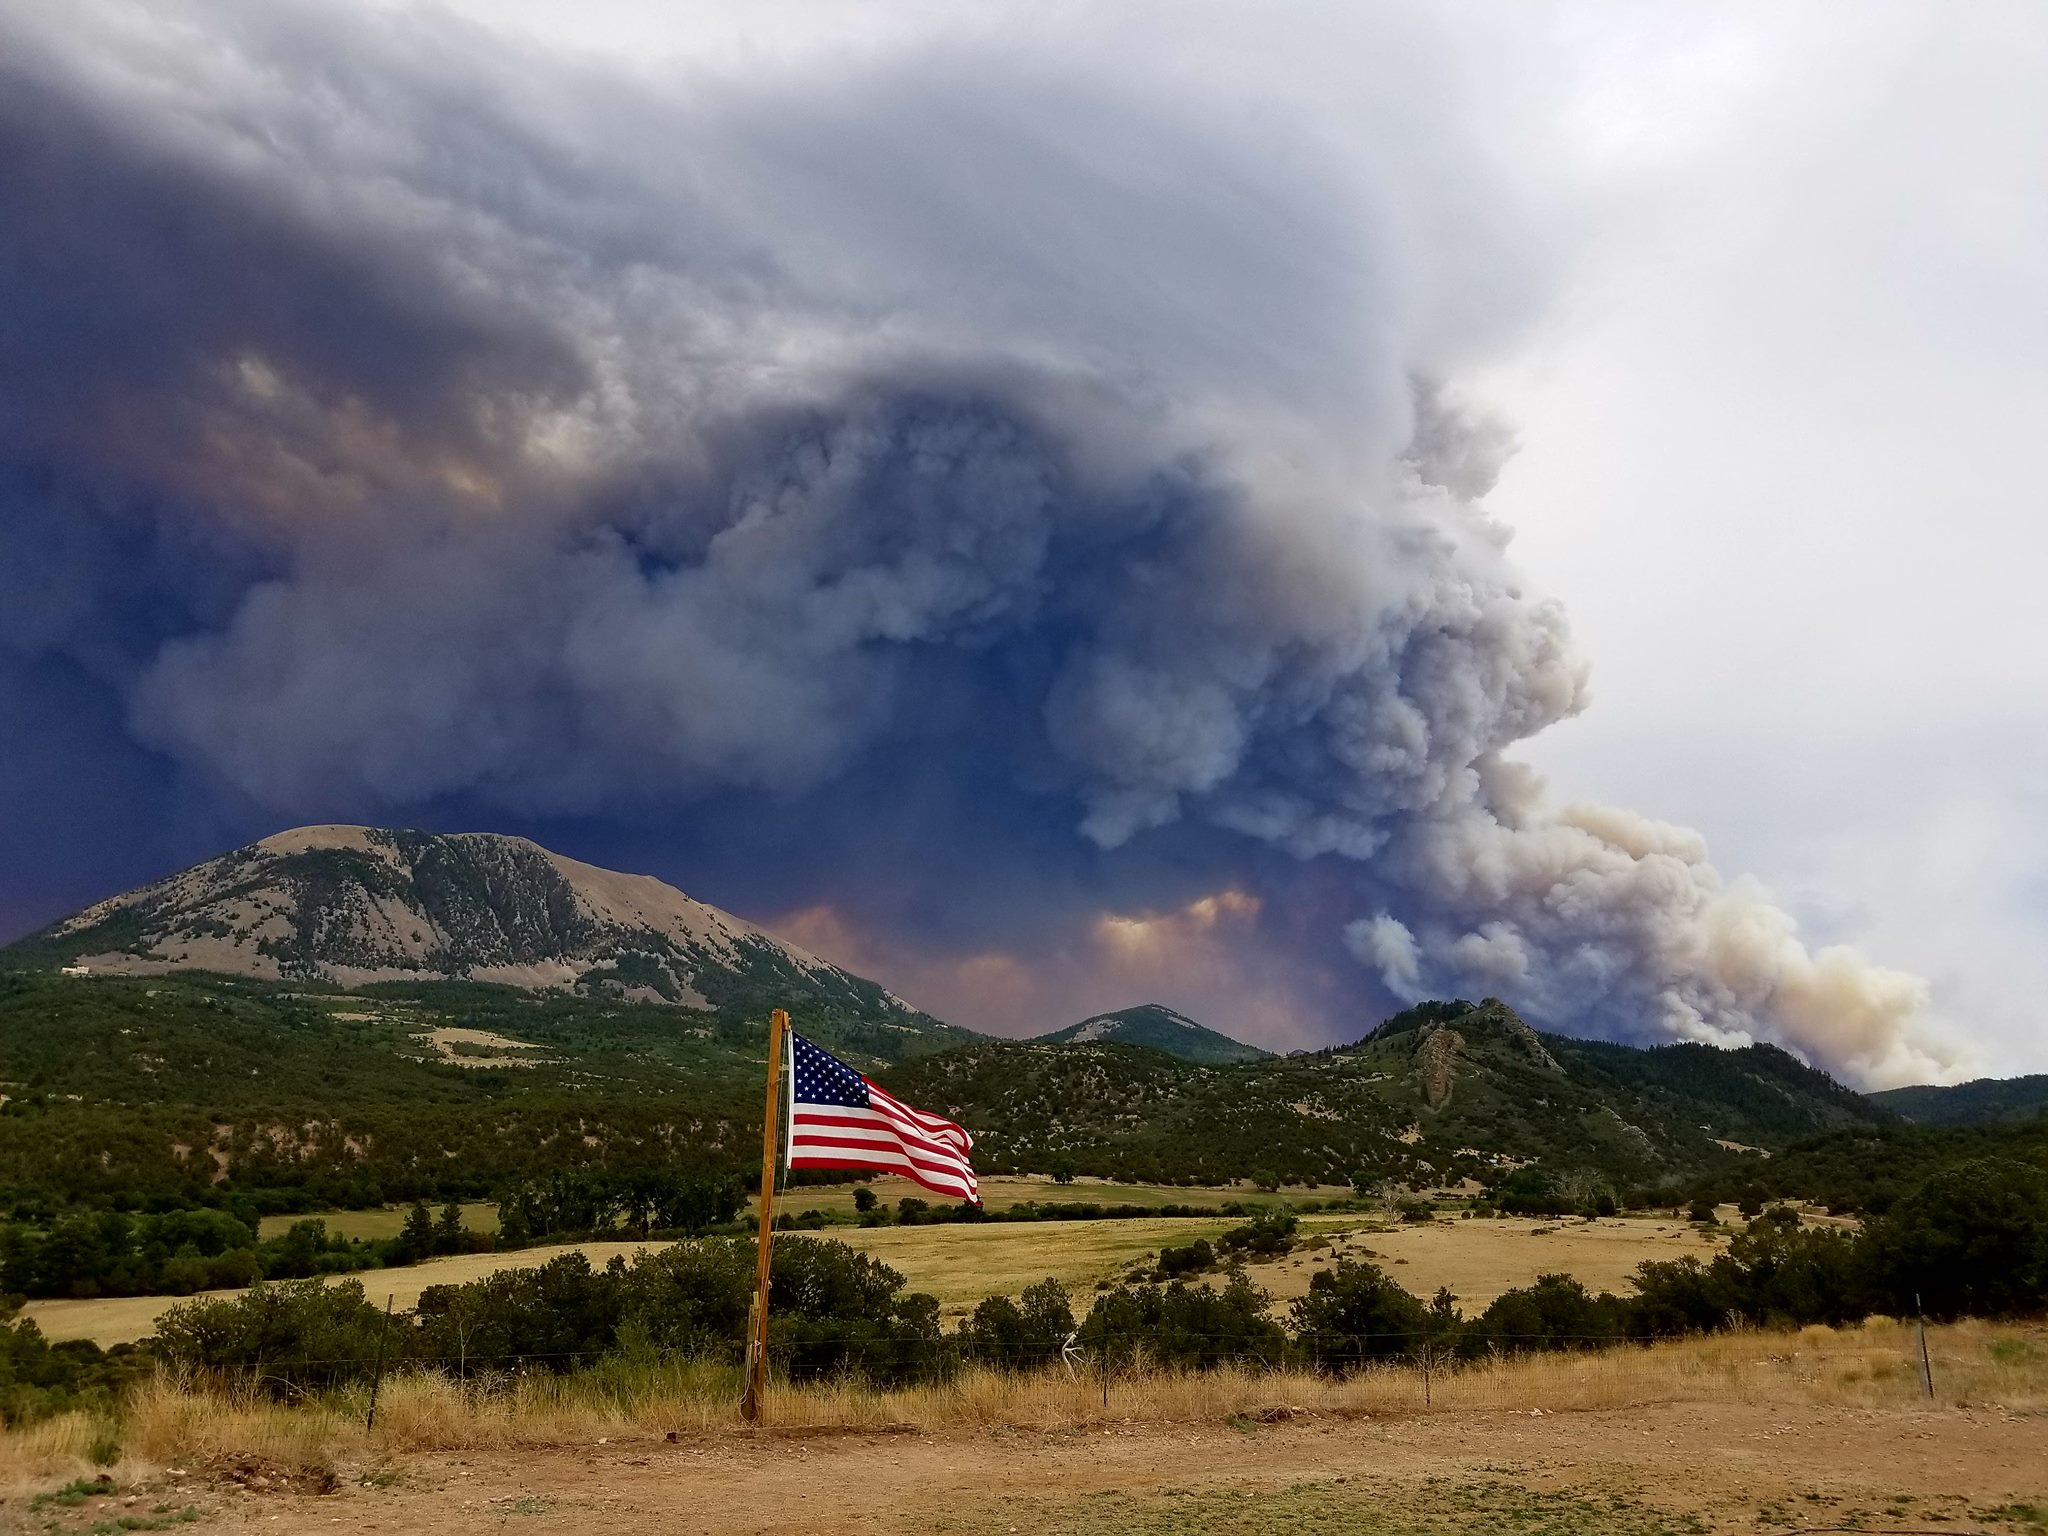 Colorado Wildfires Are Threatening My Home...and So Many Precious Memories www.herviewfromhome.com